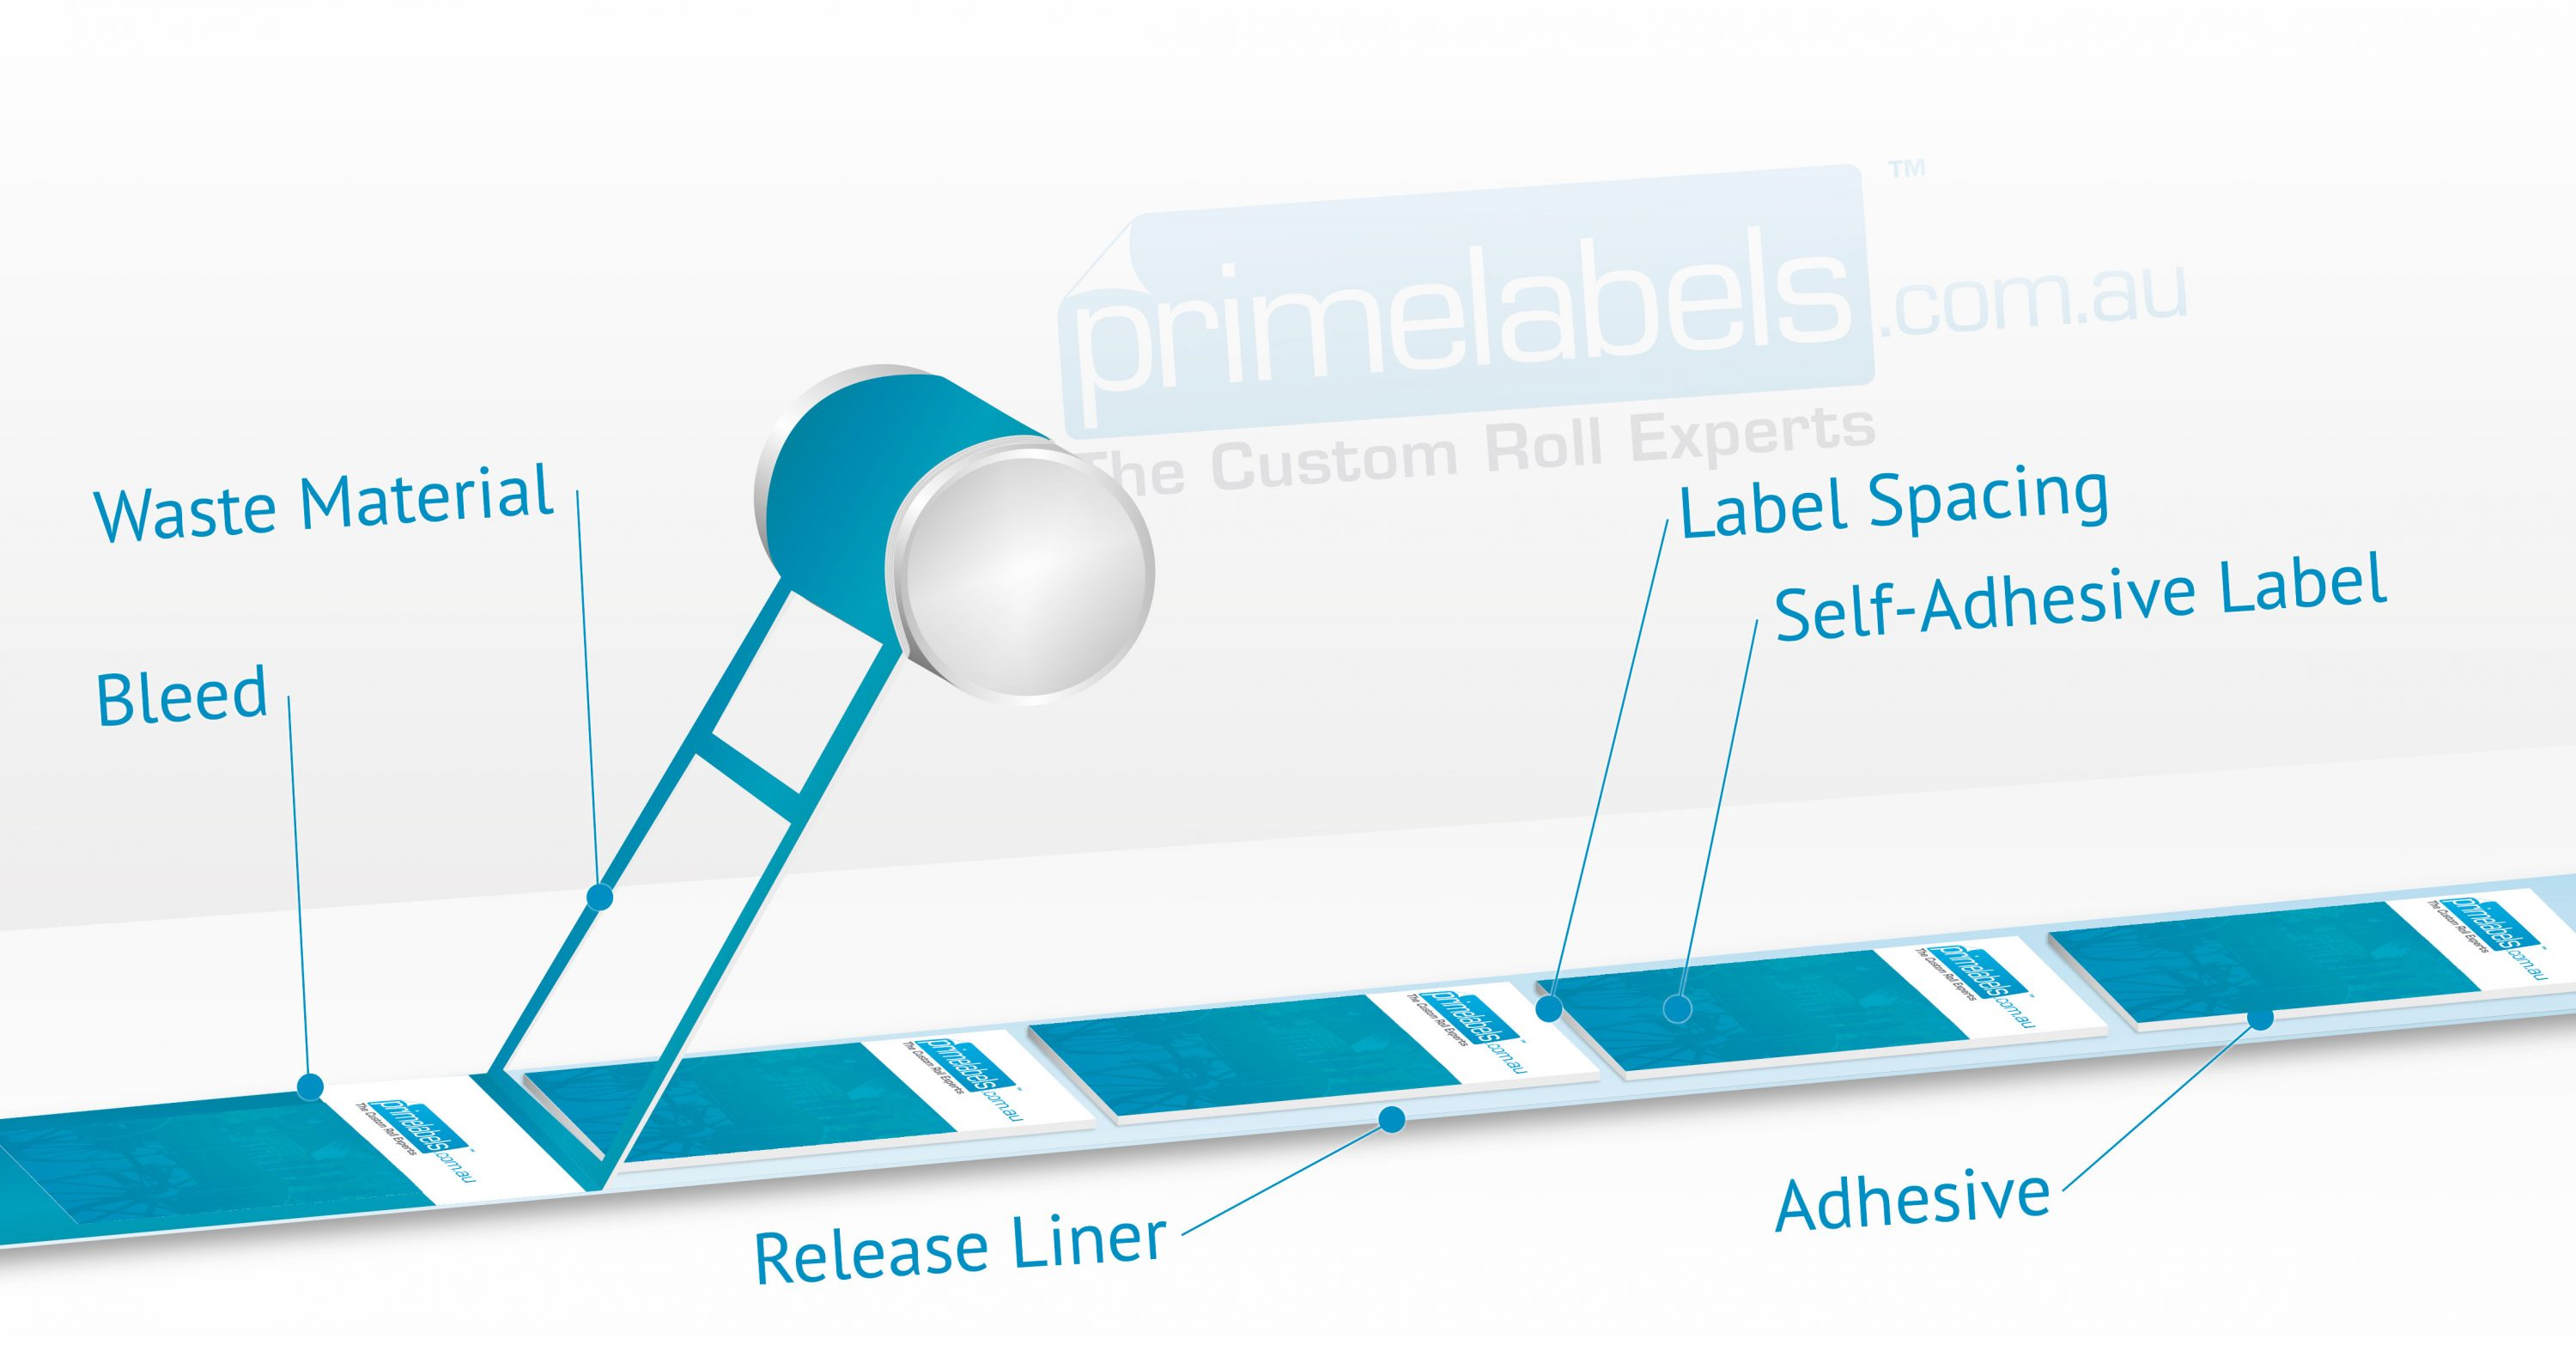 Self-adhesive labels on rolls - Technical Overview